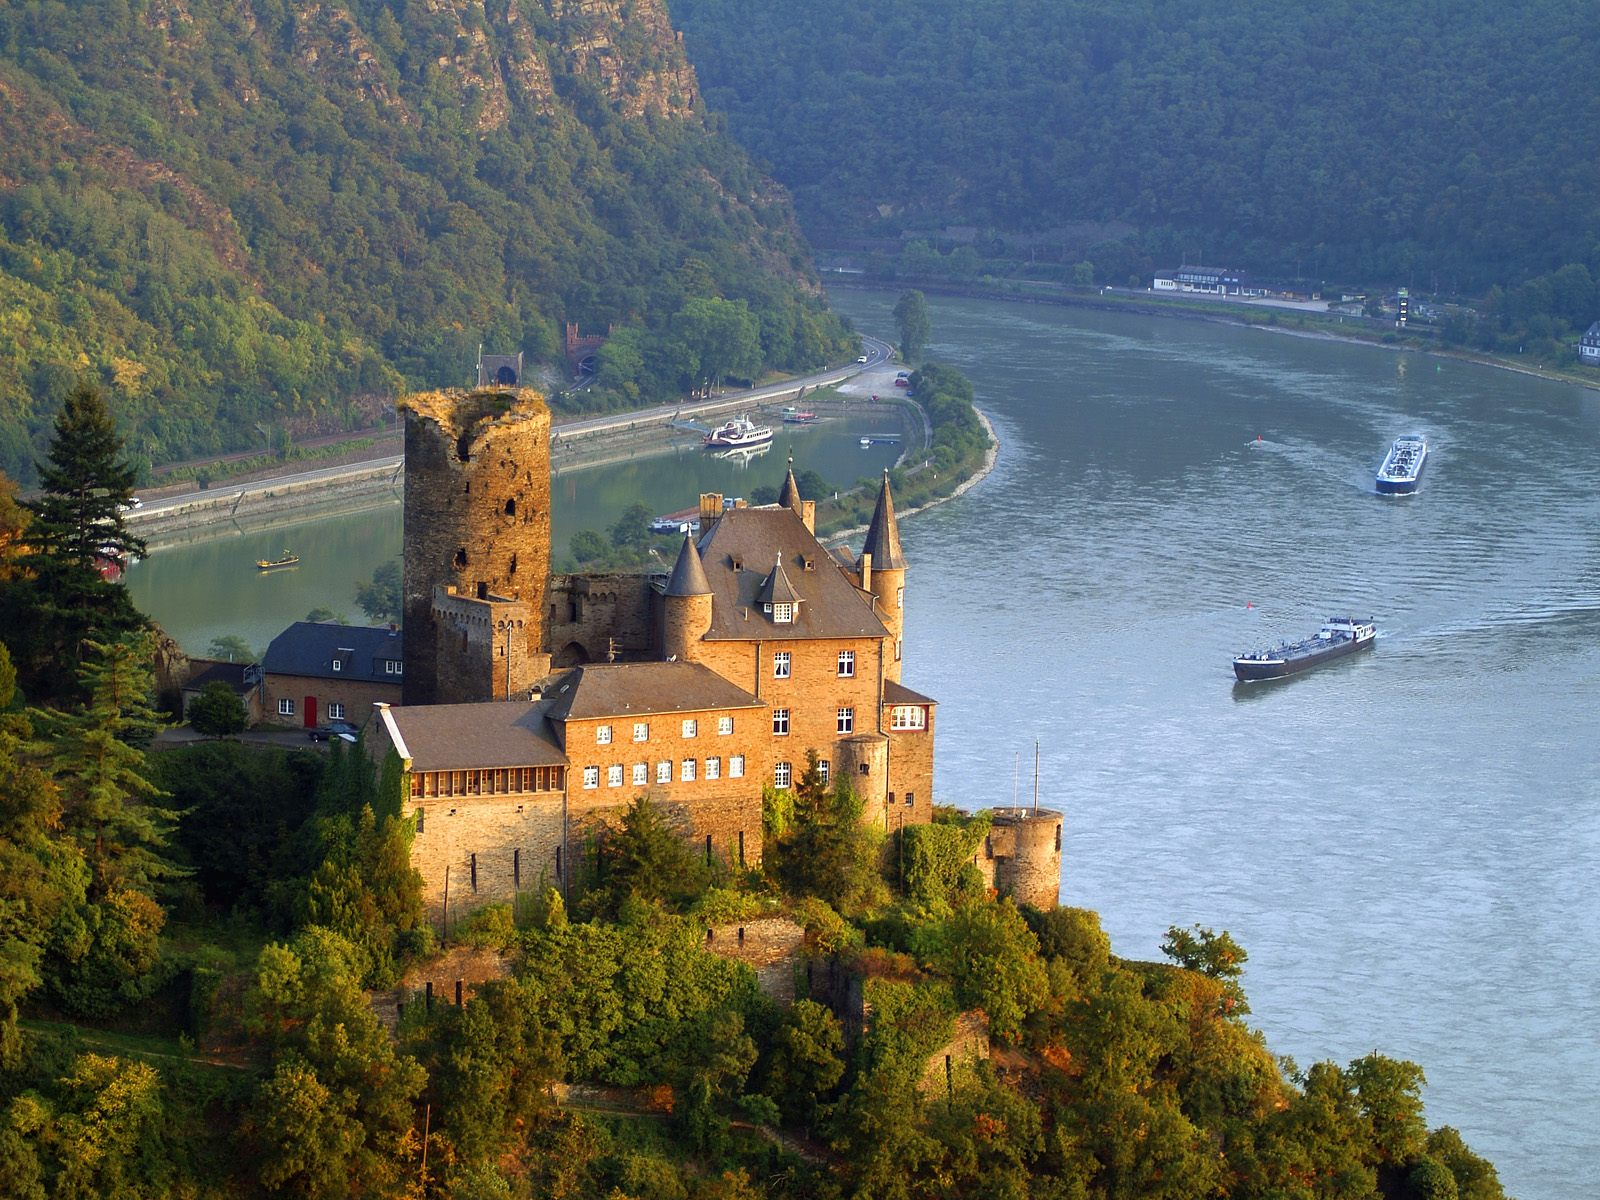 Castles on the Rhine river in Germany